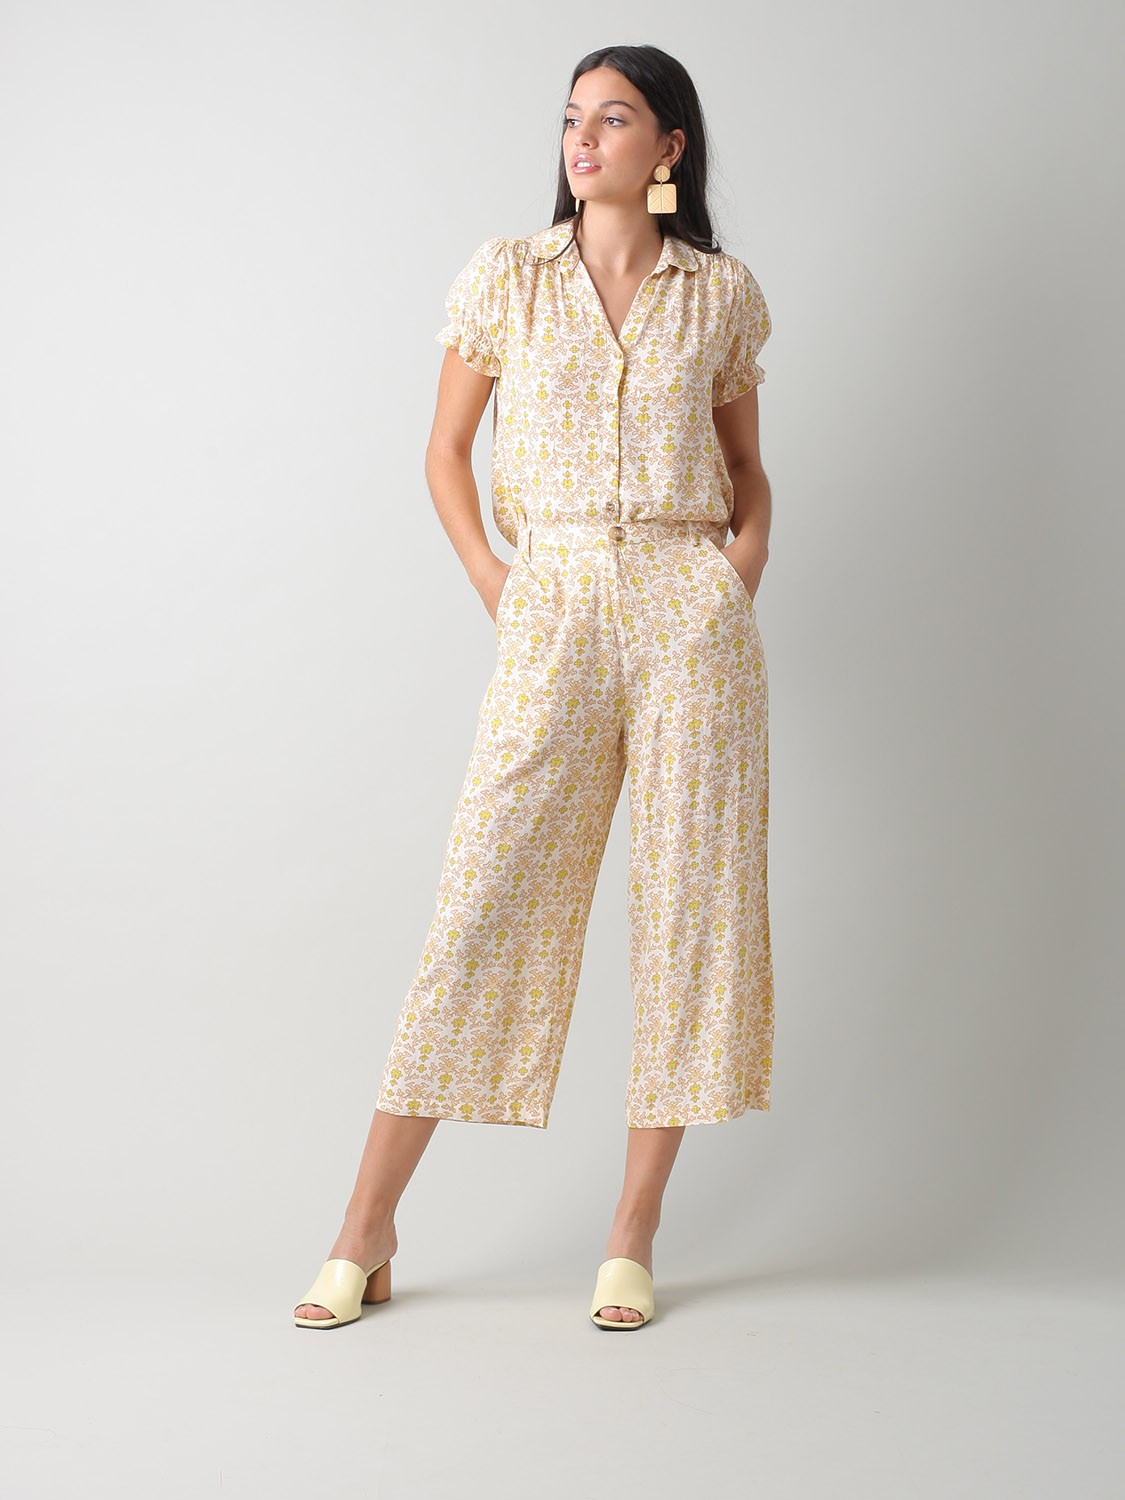 Patty Blouse/Boris Trouser